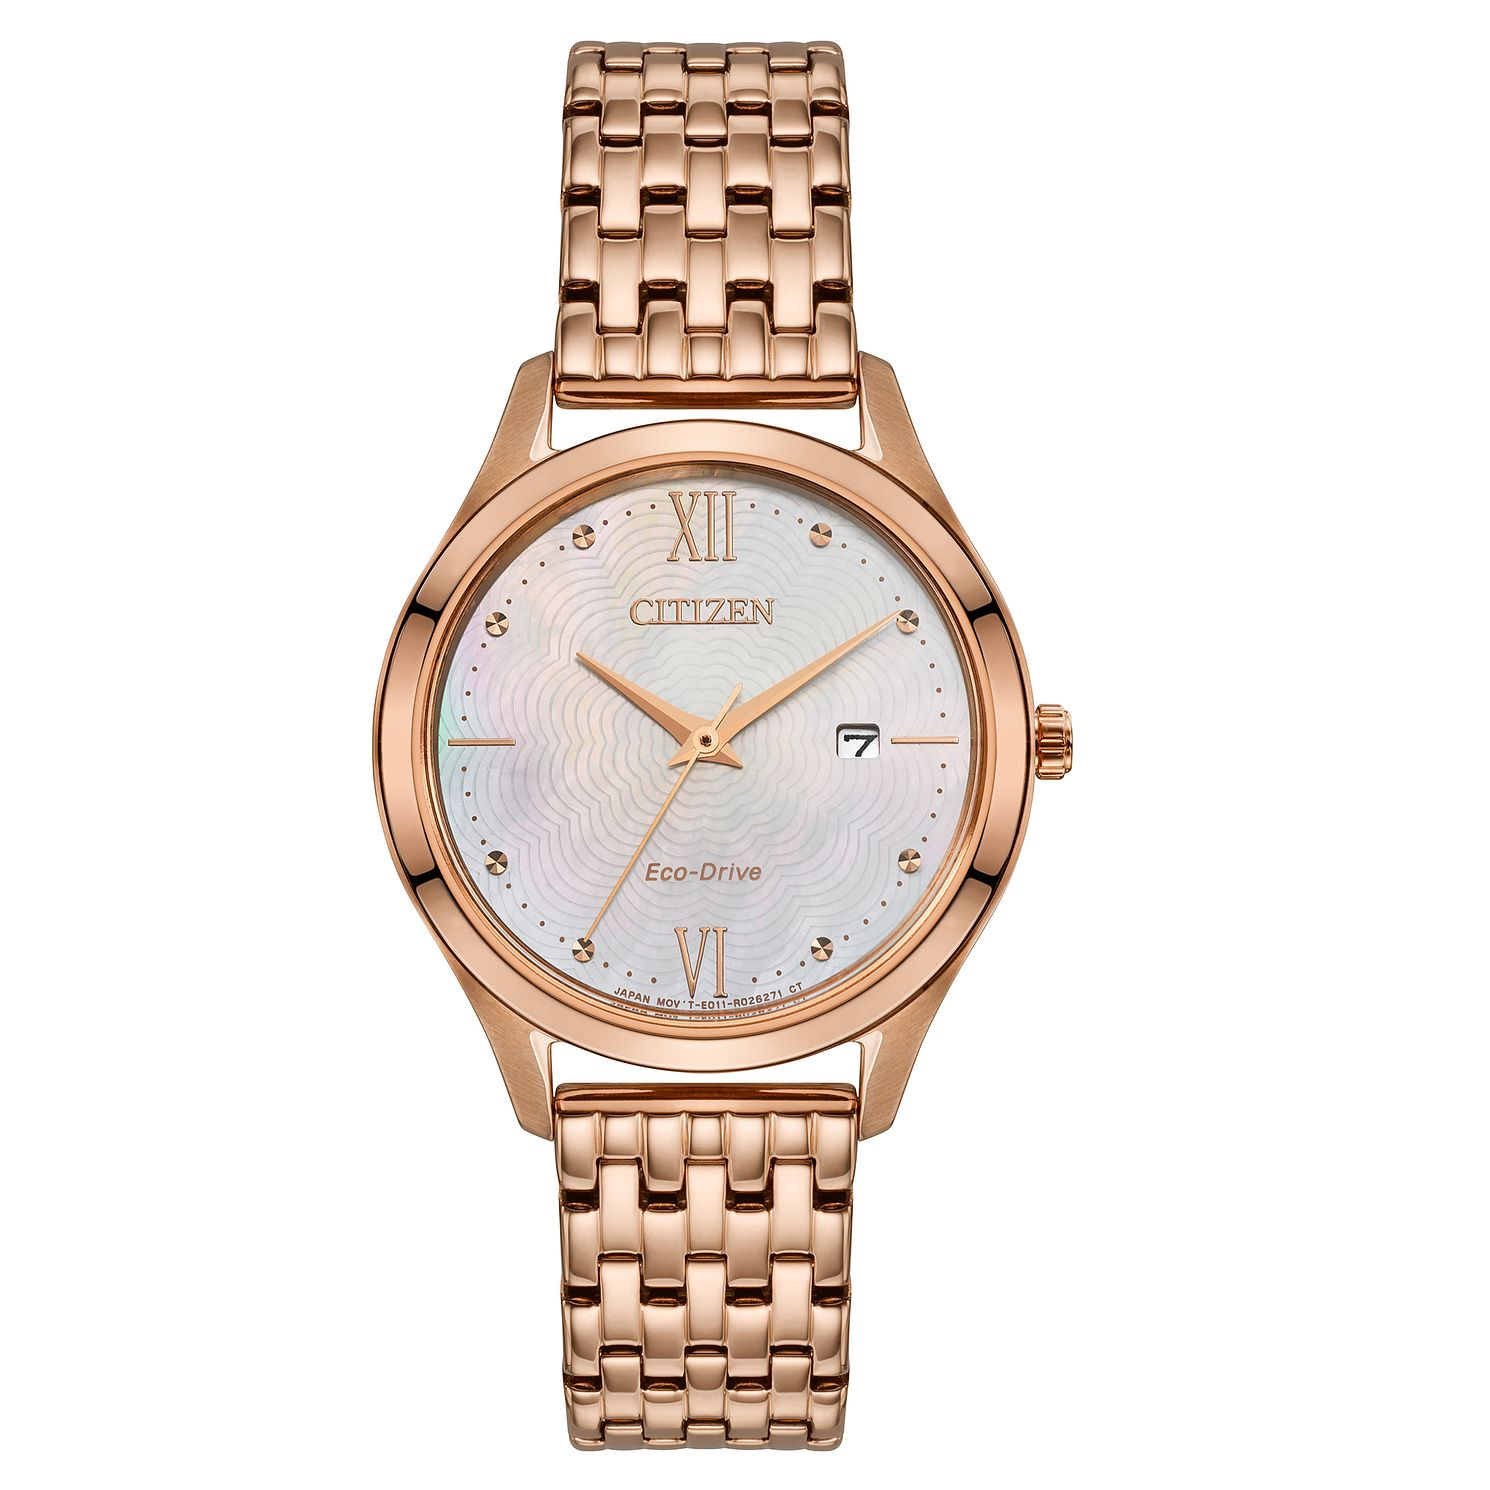 Citizen Eco-Drive Ladies' Rose Gold Tone Bracelet Watch - Product number 5234271